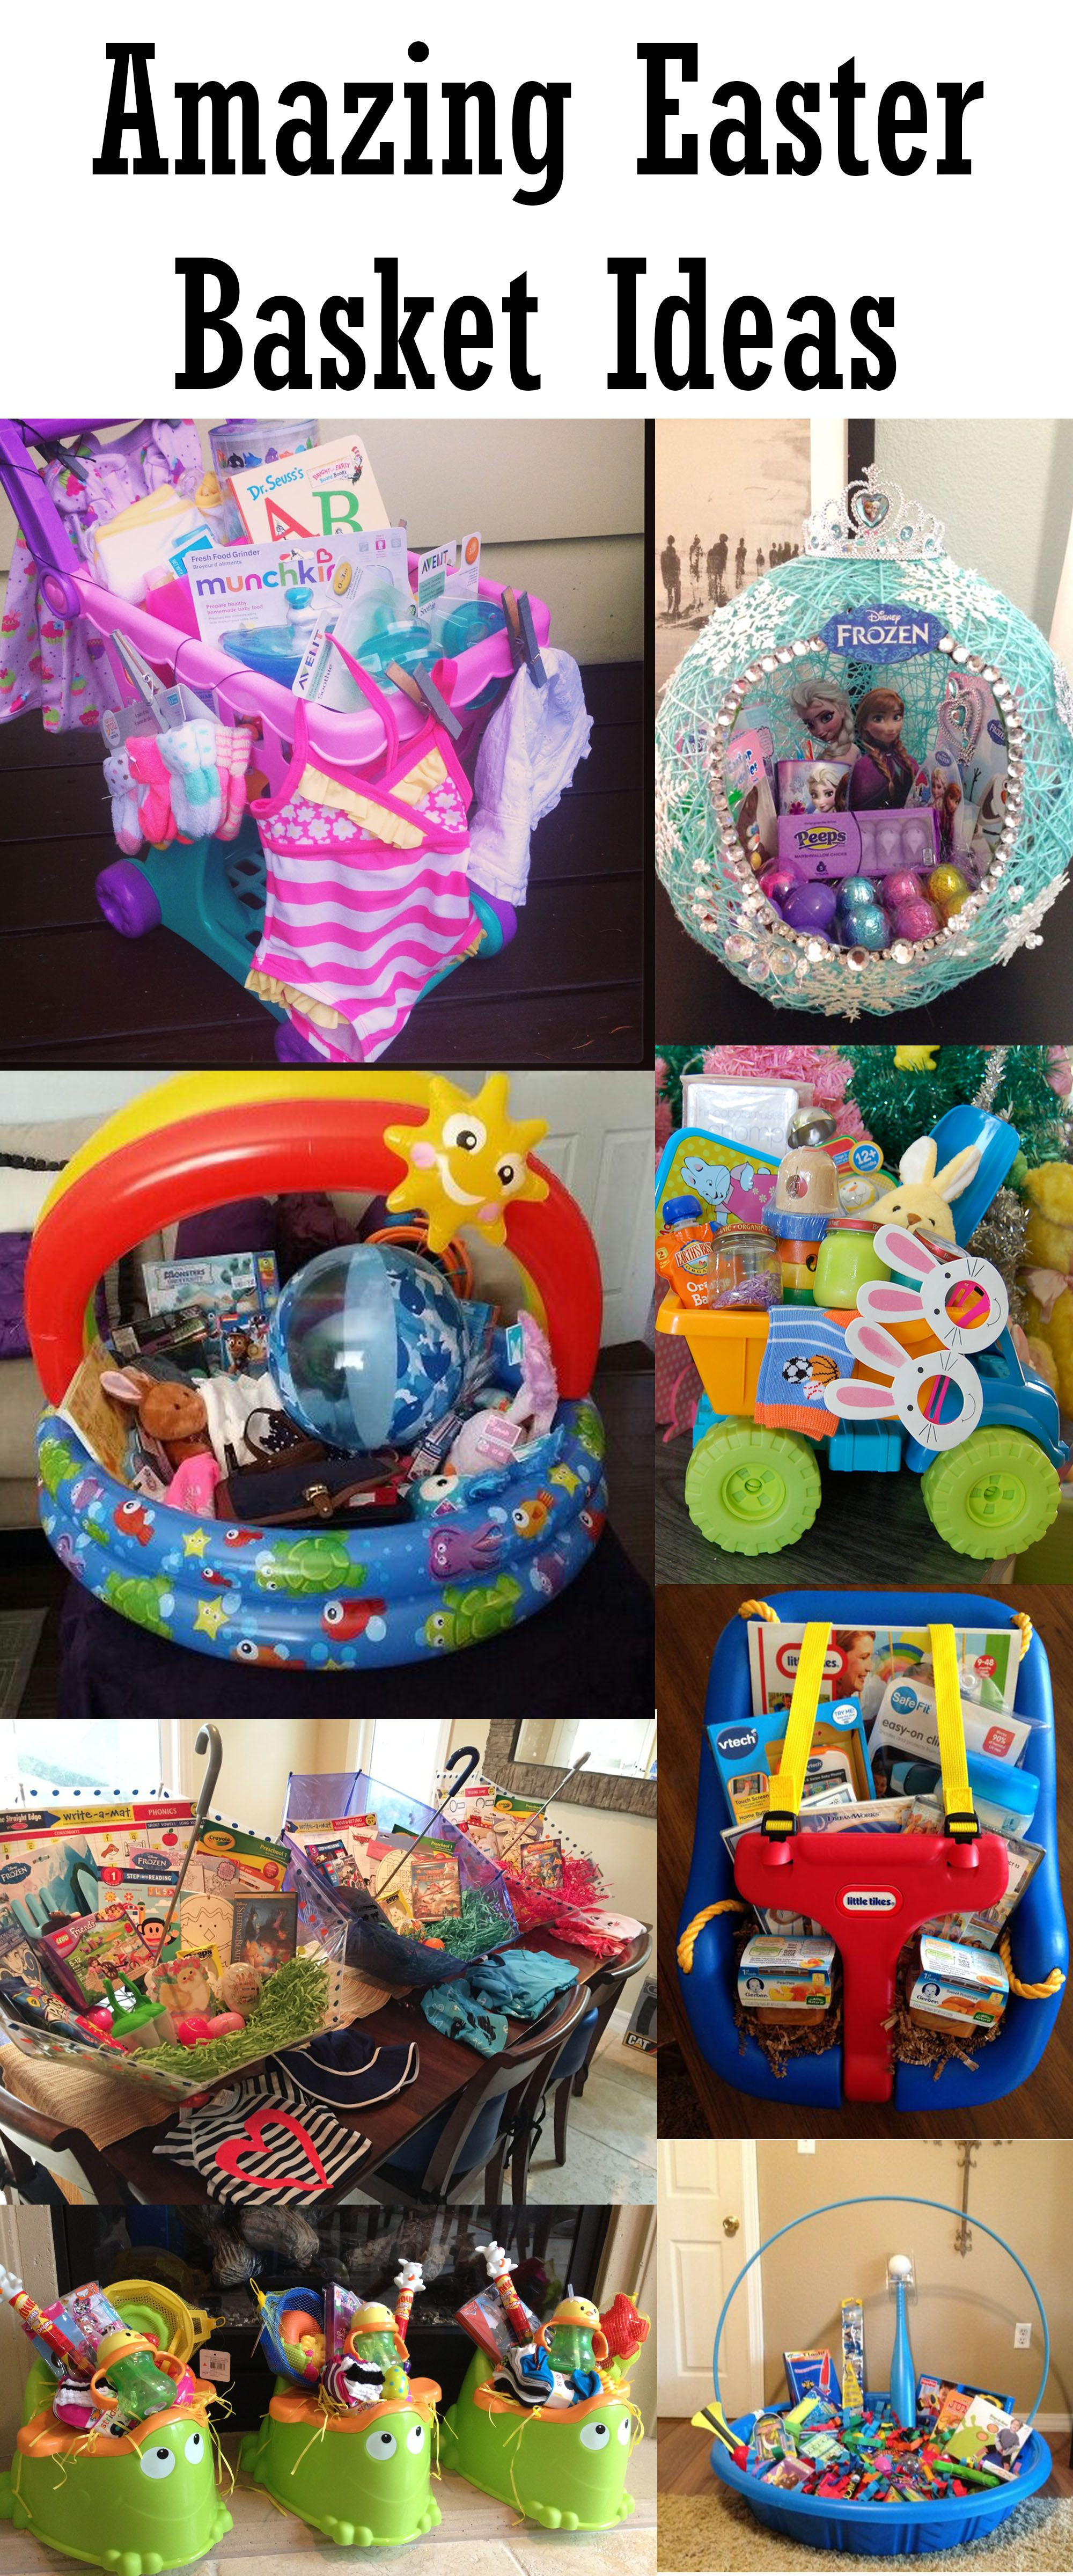 Best ideas about Easter Gift Ideas For Boys . Save or Pin Amazing Easter Basket Ideas Easter Now.